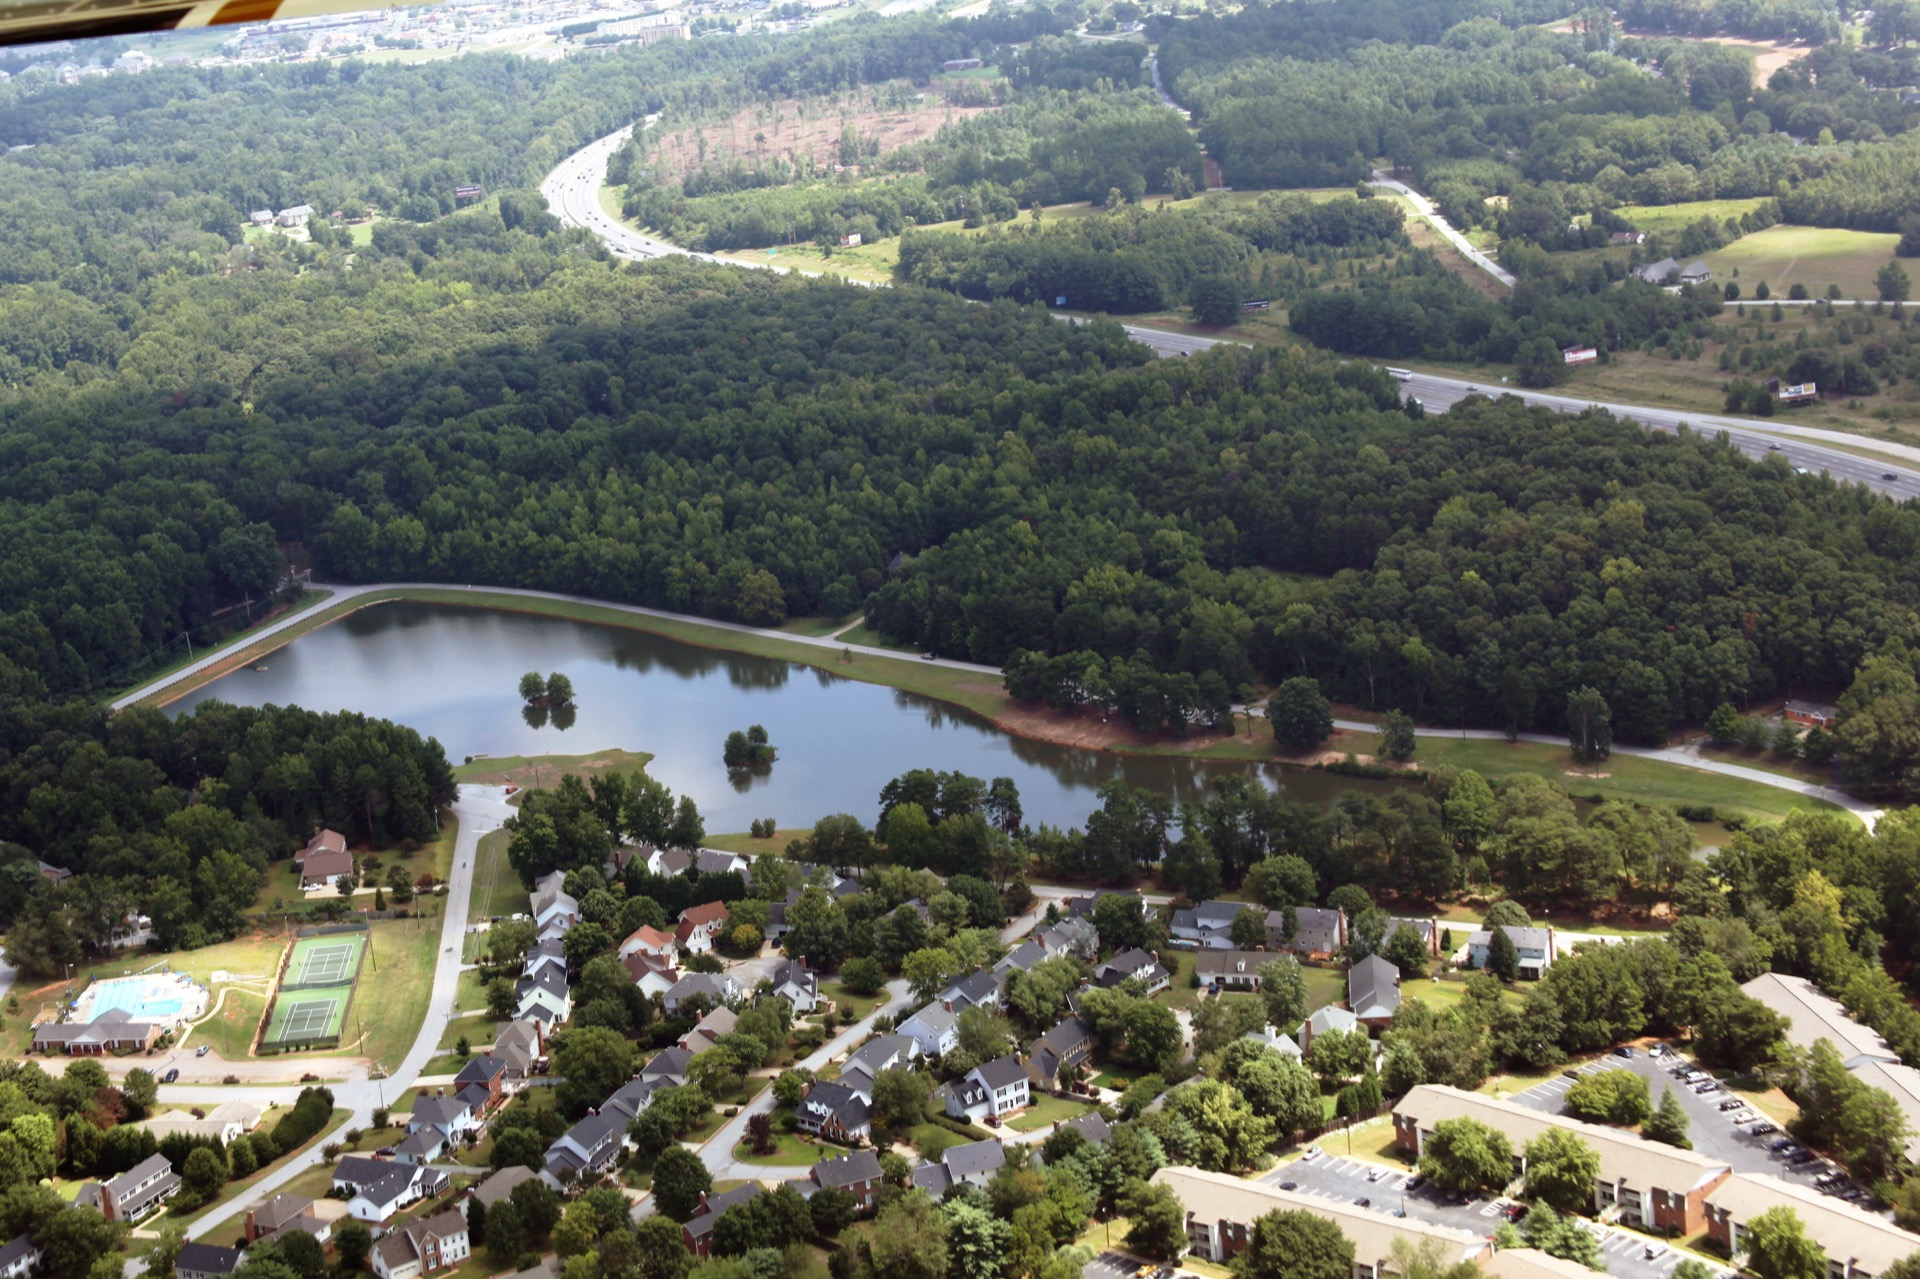 oak grove park aerial view